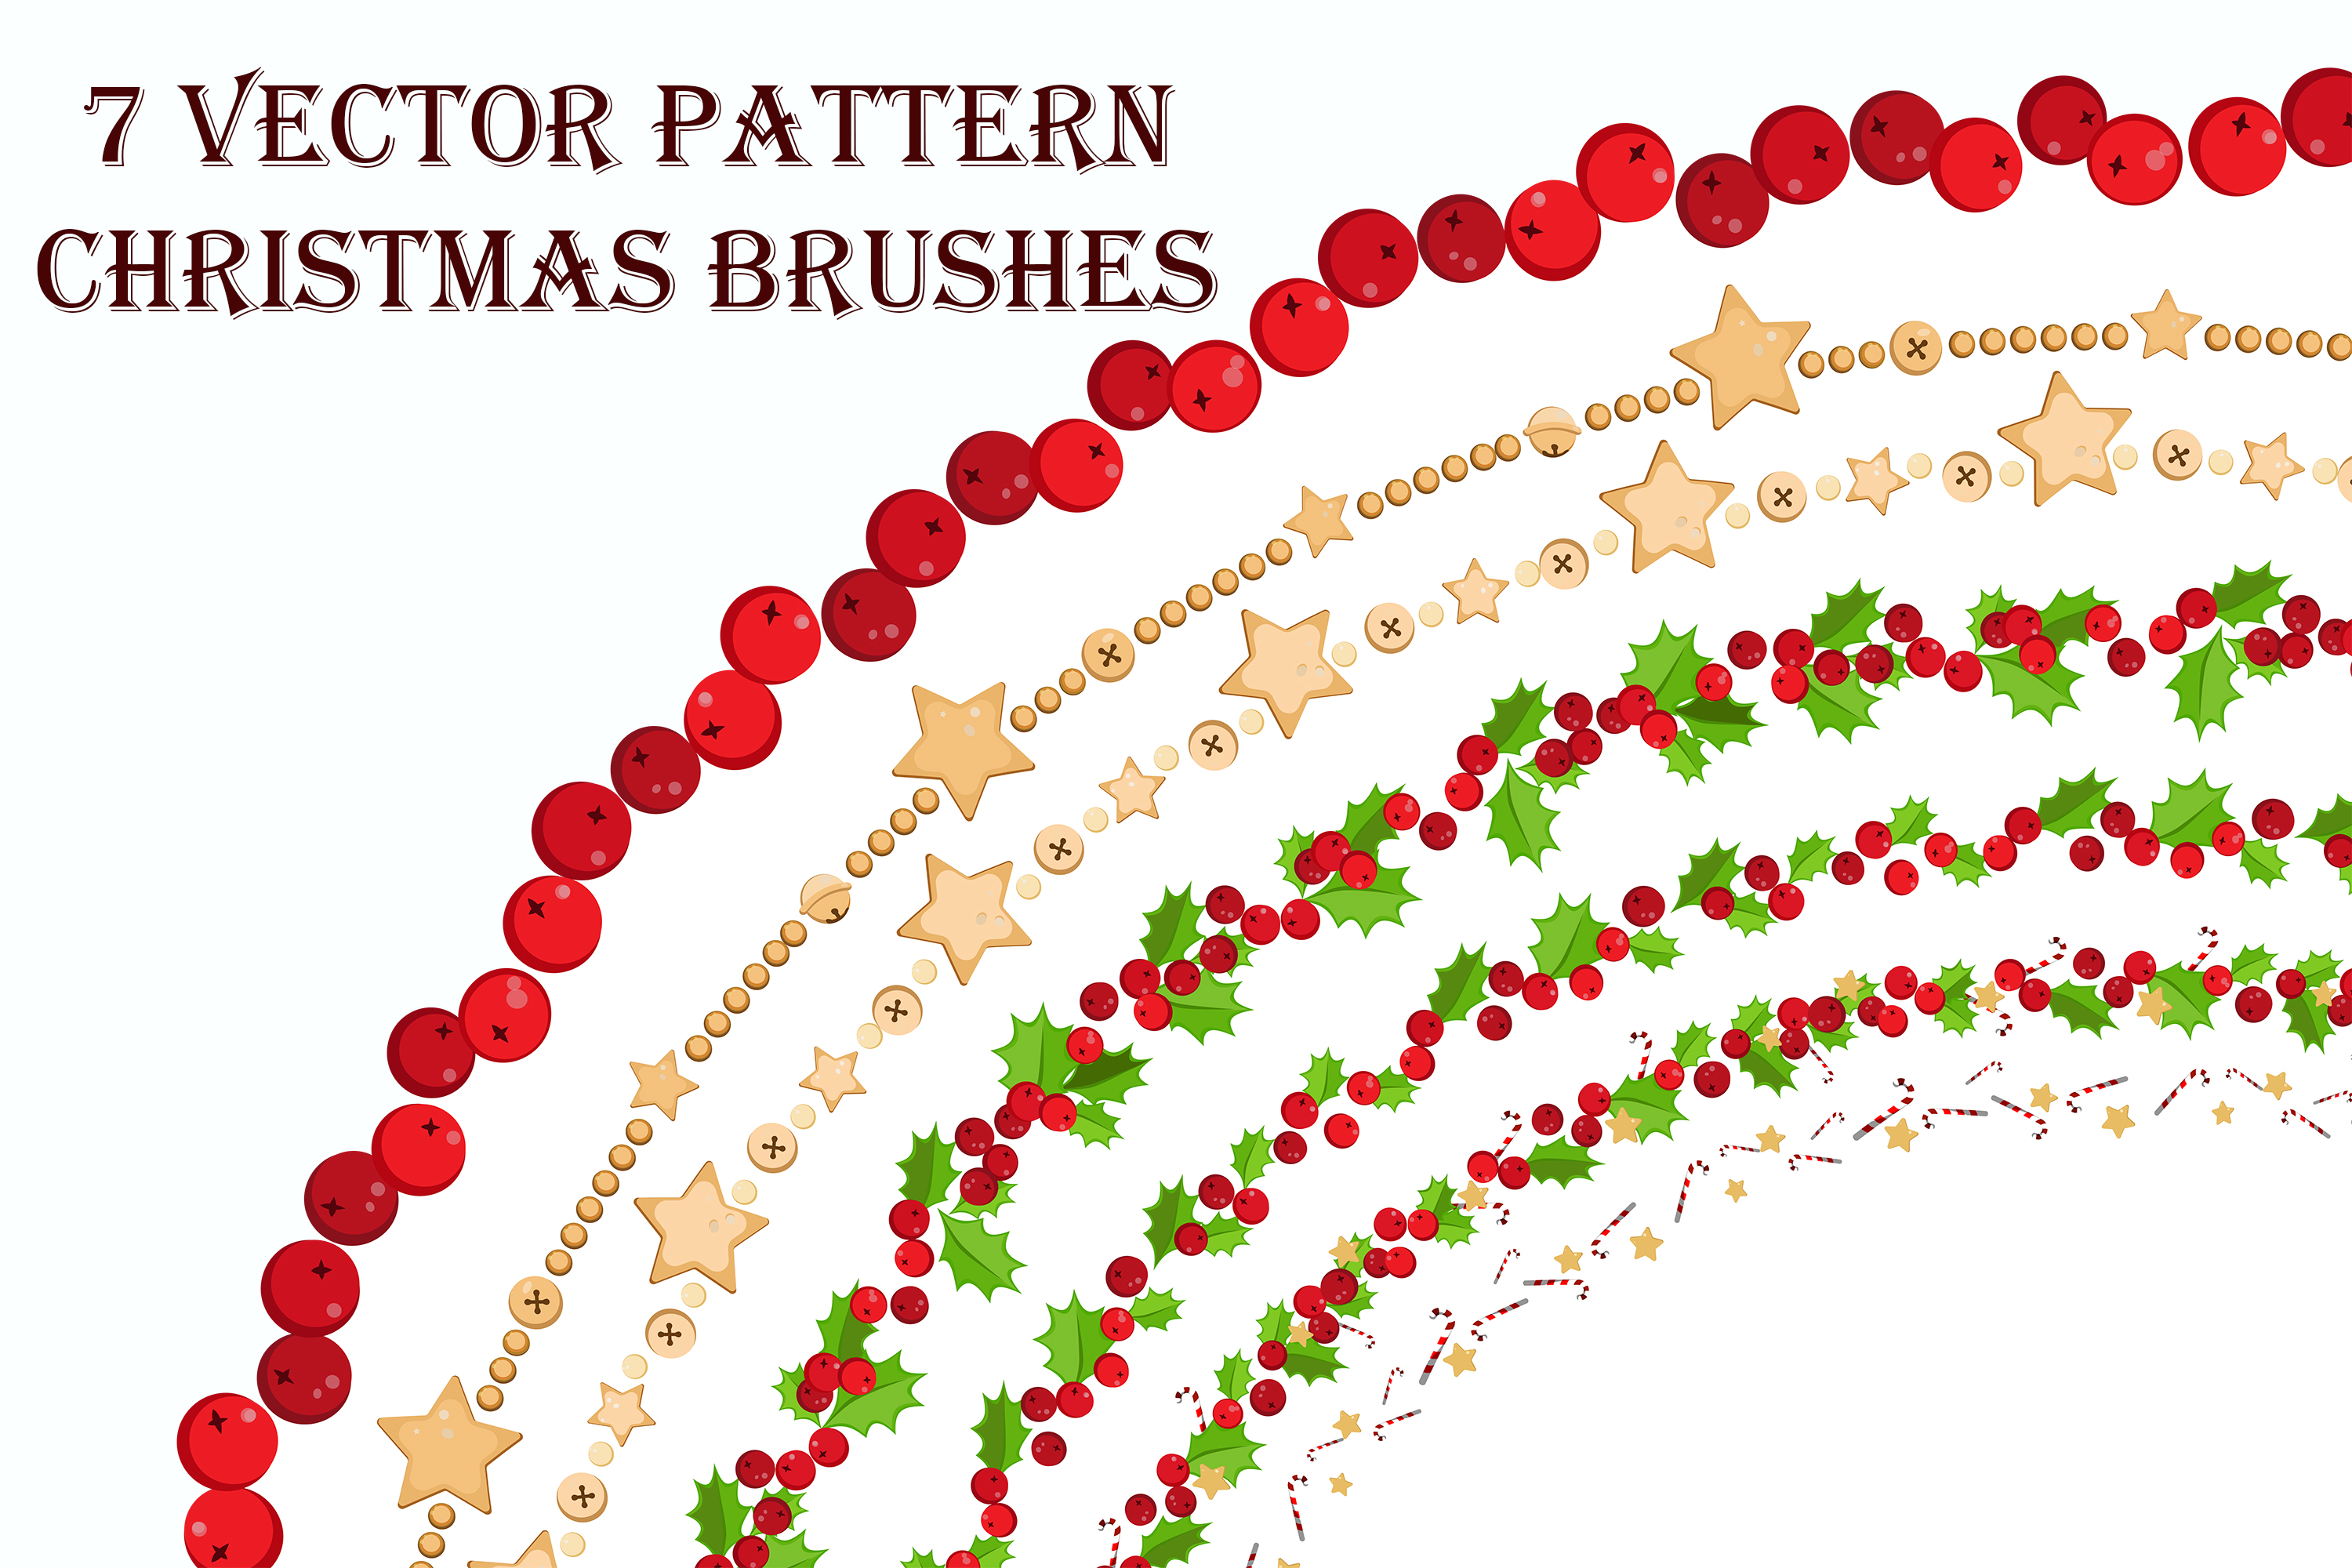 7 Vector Pattern Christmas Brushes example image 2